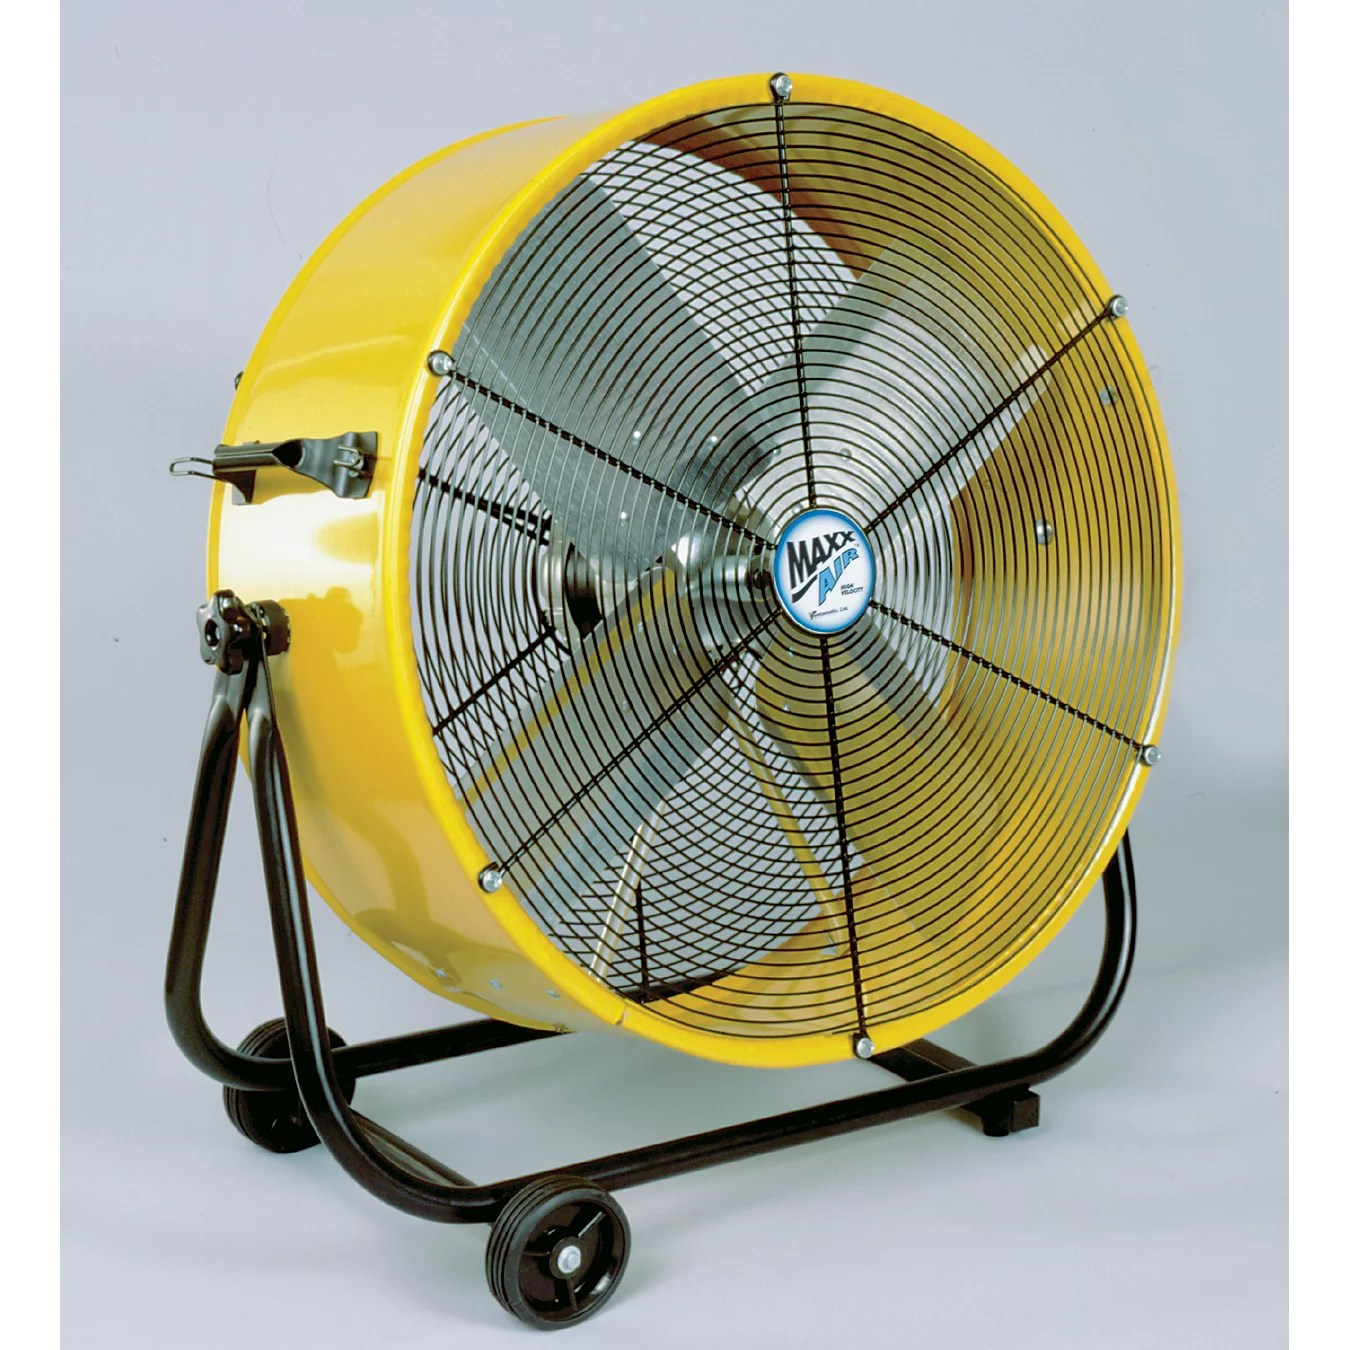 ventamatic bf24tfyel 24 tilt fan barrel walmart com fasco fan motor wiring diagram maxxair barrel fan motor wiring diagram [ 1350 x 1350 Pixel ]